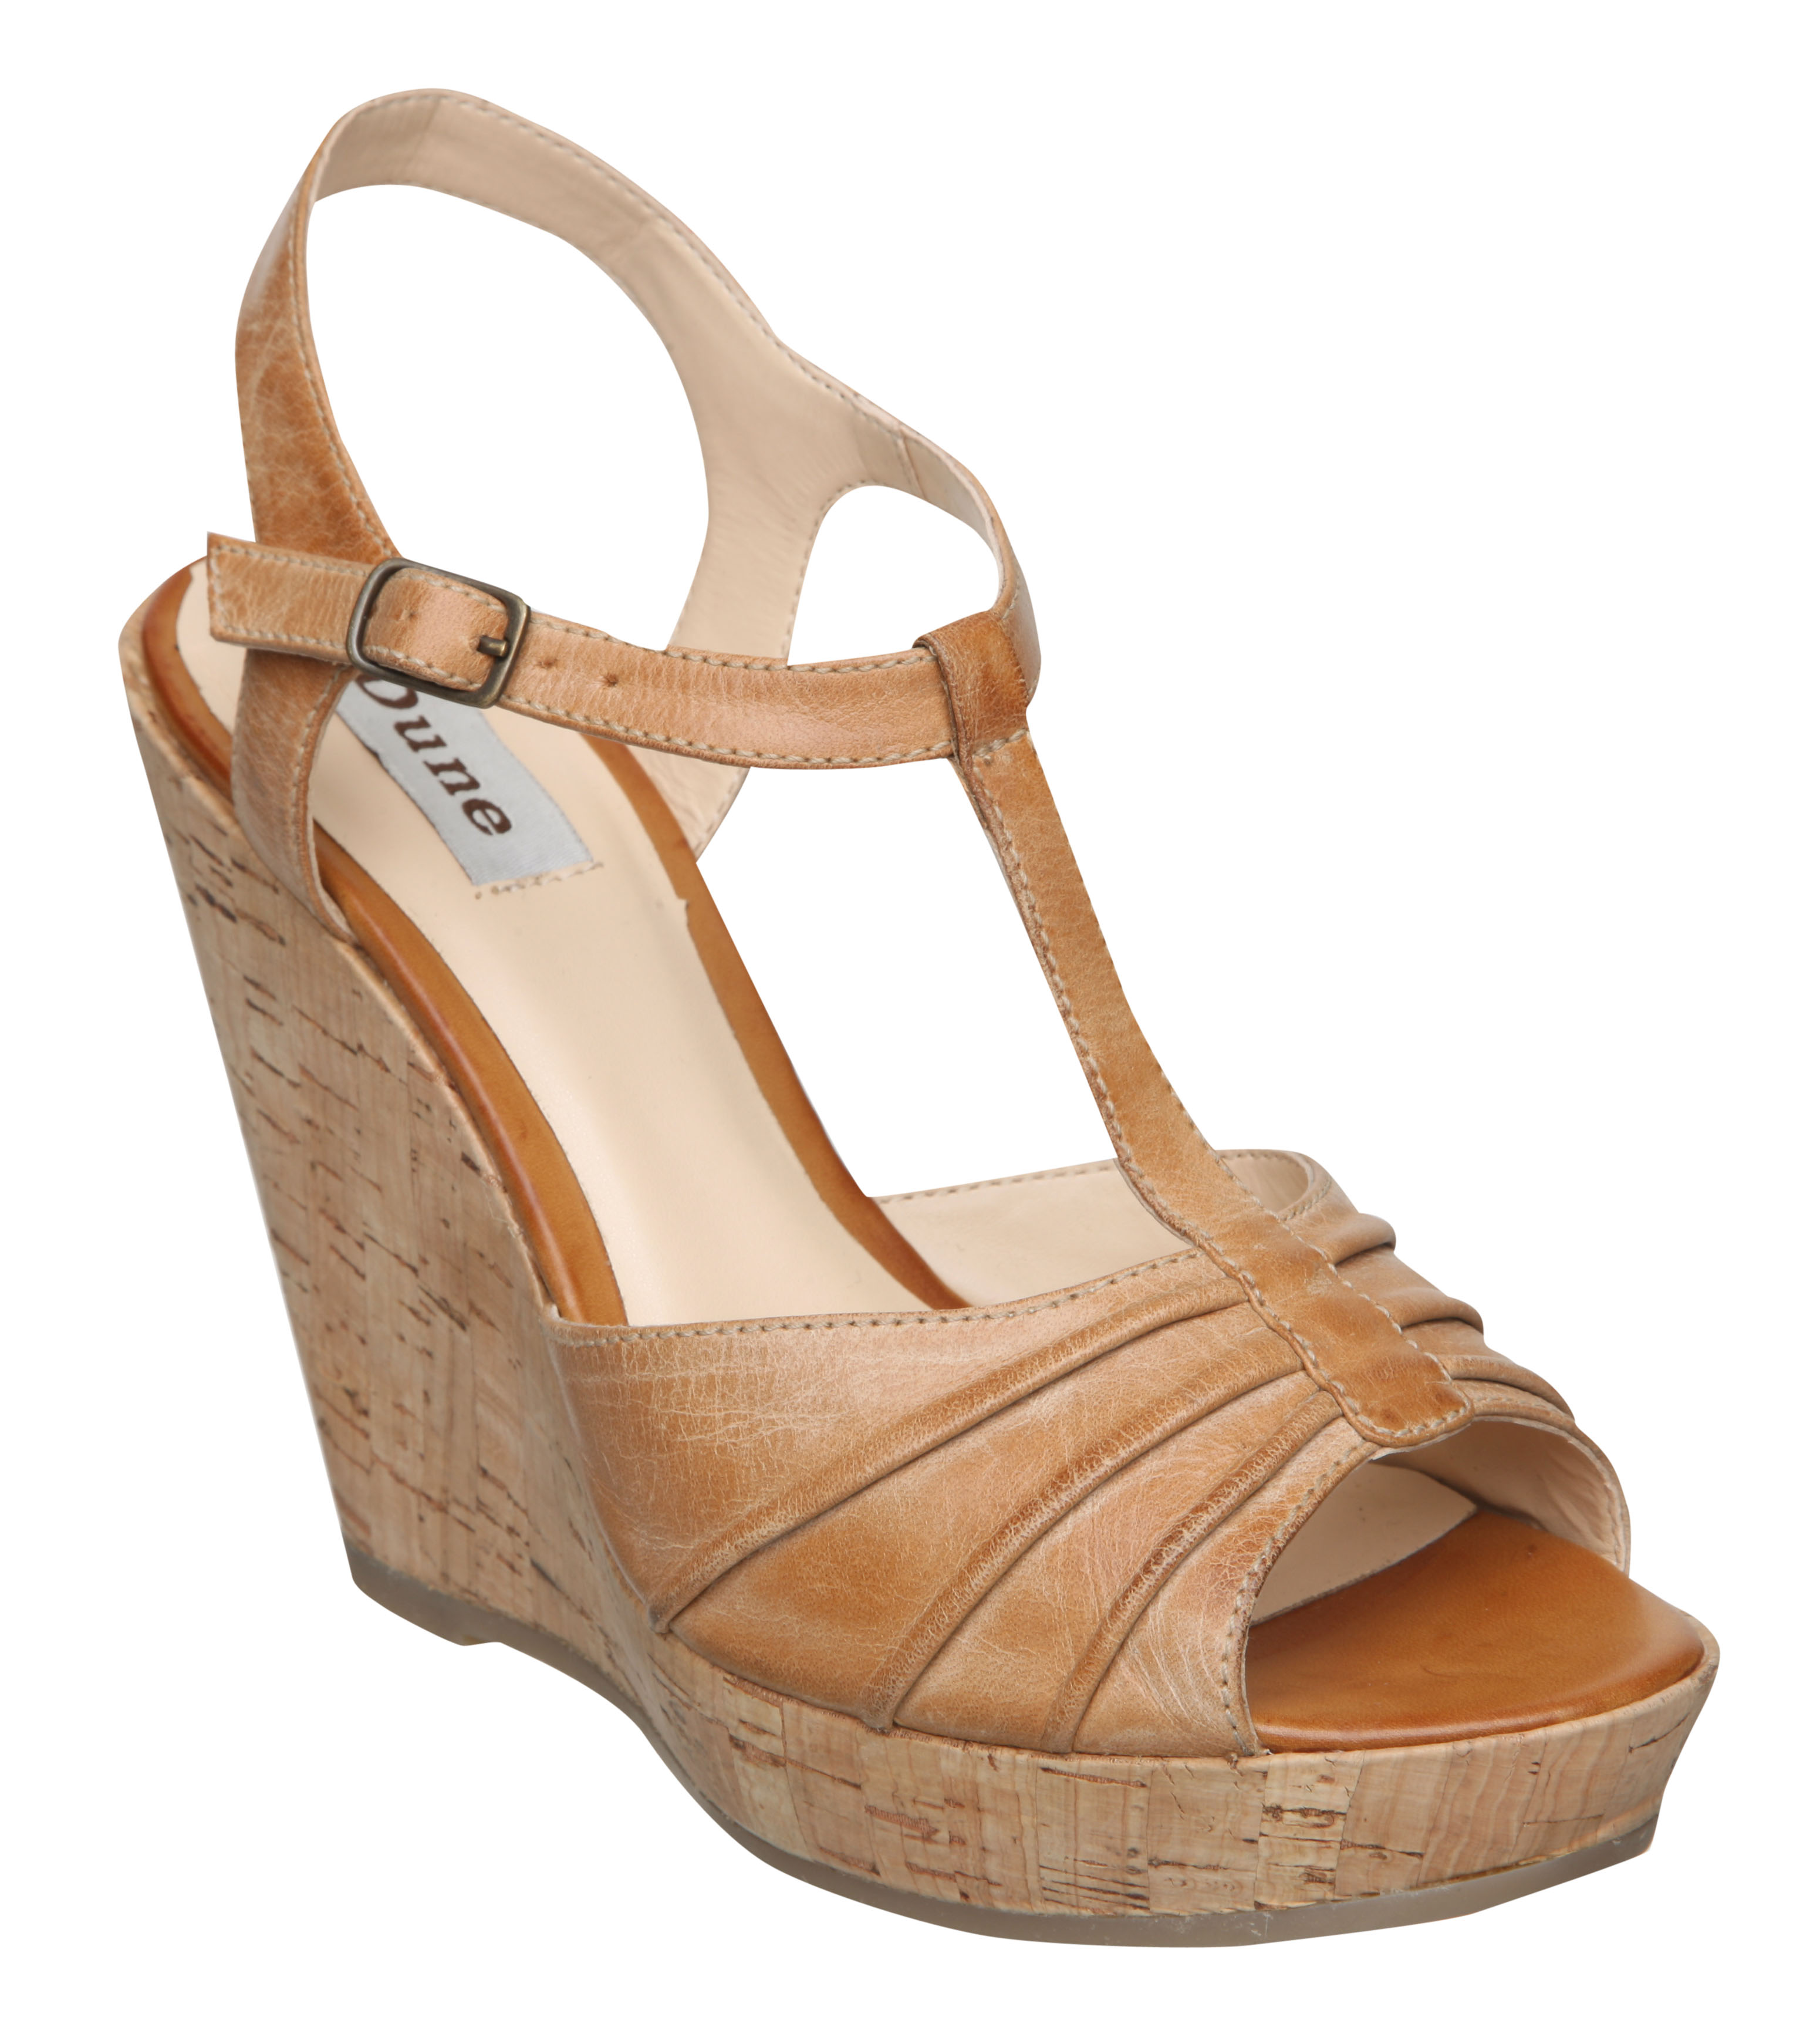 NEW-DUNE-WOMENS-SB-GLADSTONE-TAN-BROWN-LADIES-PLATFORM-WEDGE-HEEL-SHOES-SIZE-3-8